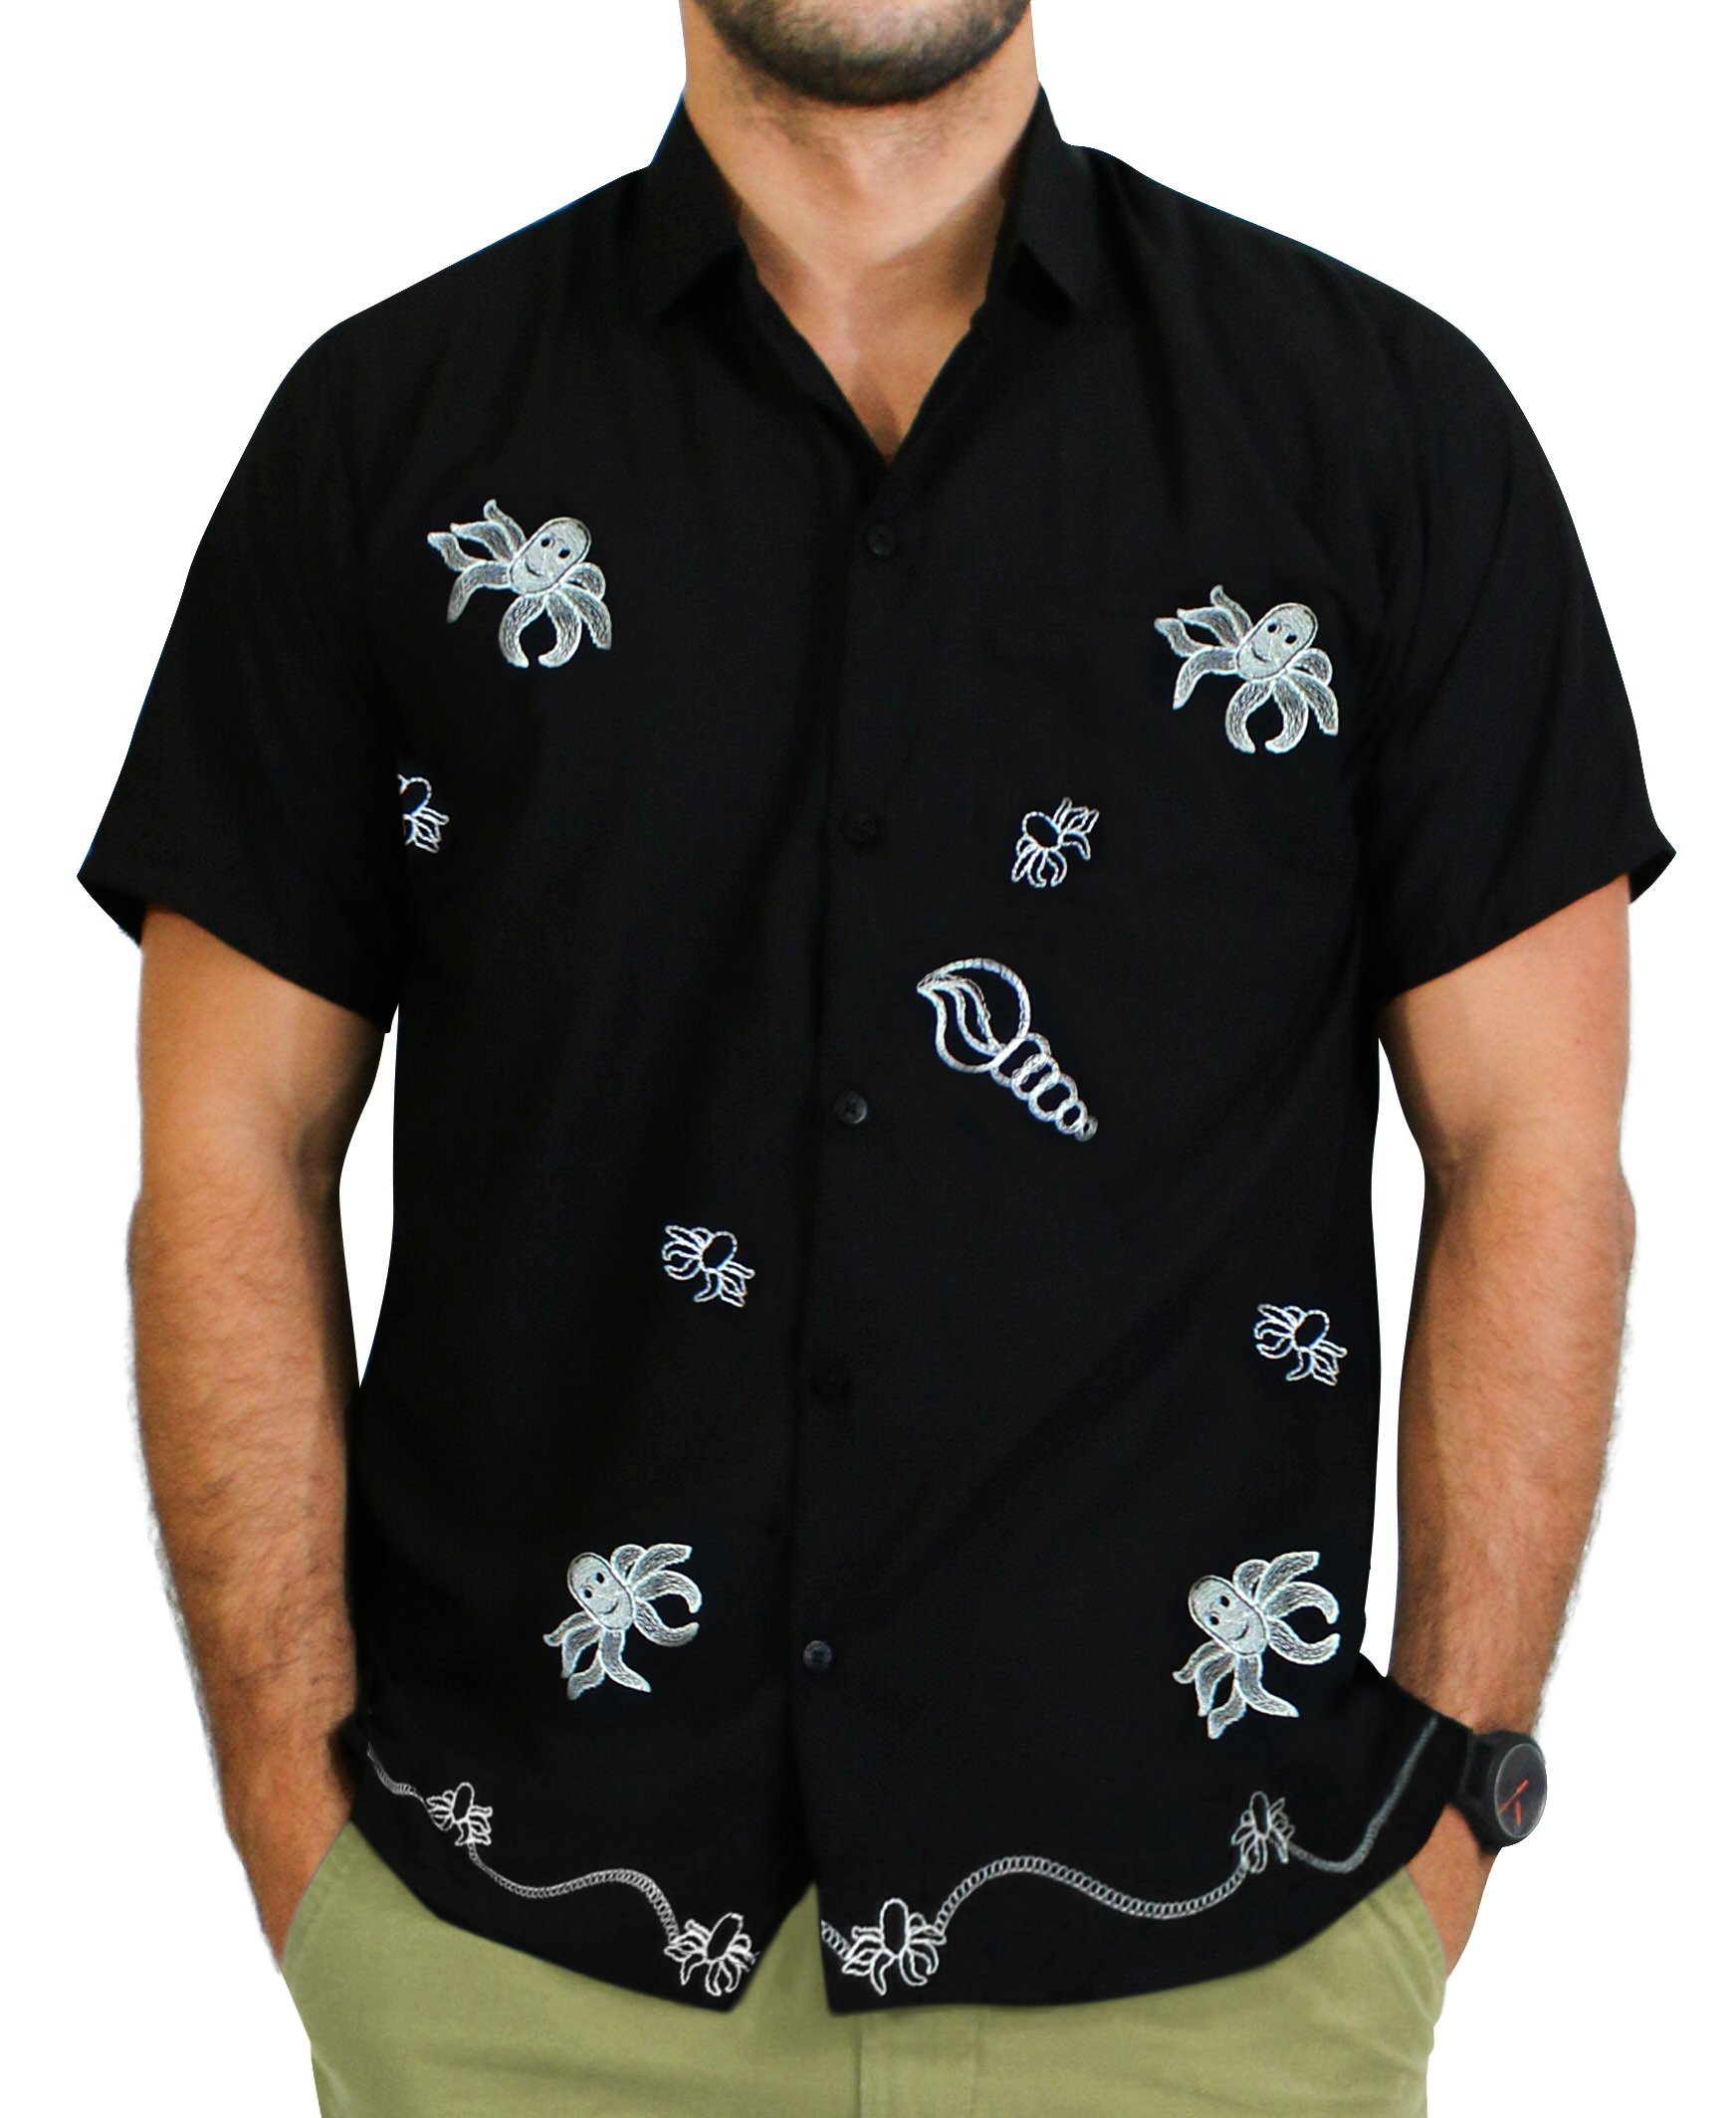 LA LEELA Rayon Luau Vacation Point Collar Shirt Black 46 2XL |Chest 54'' - 59''